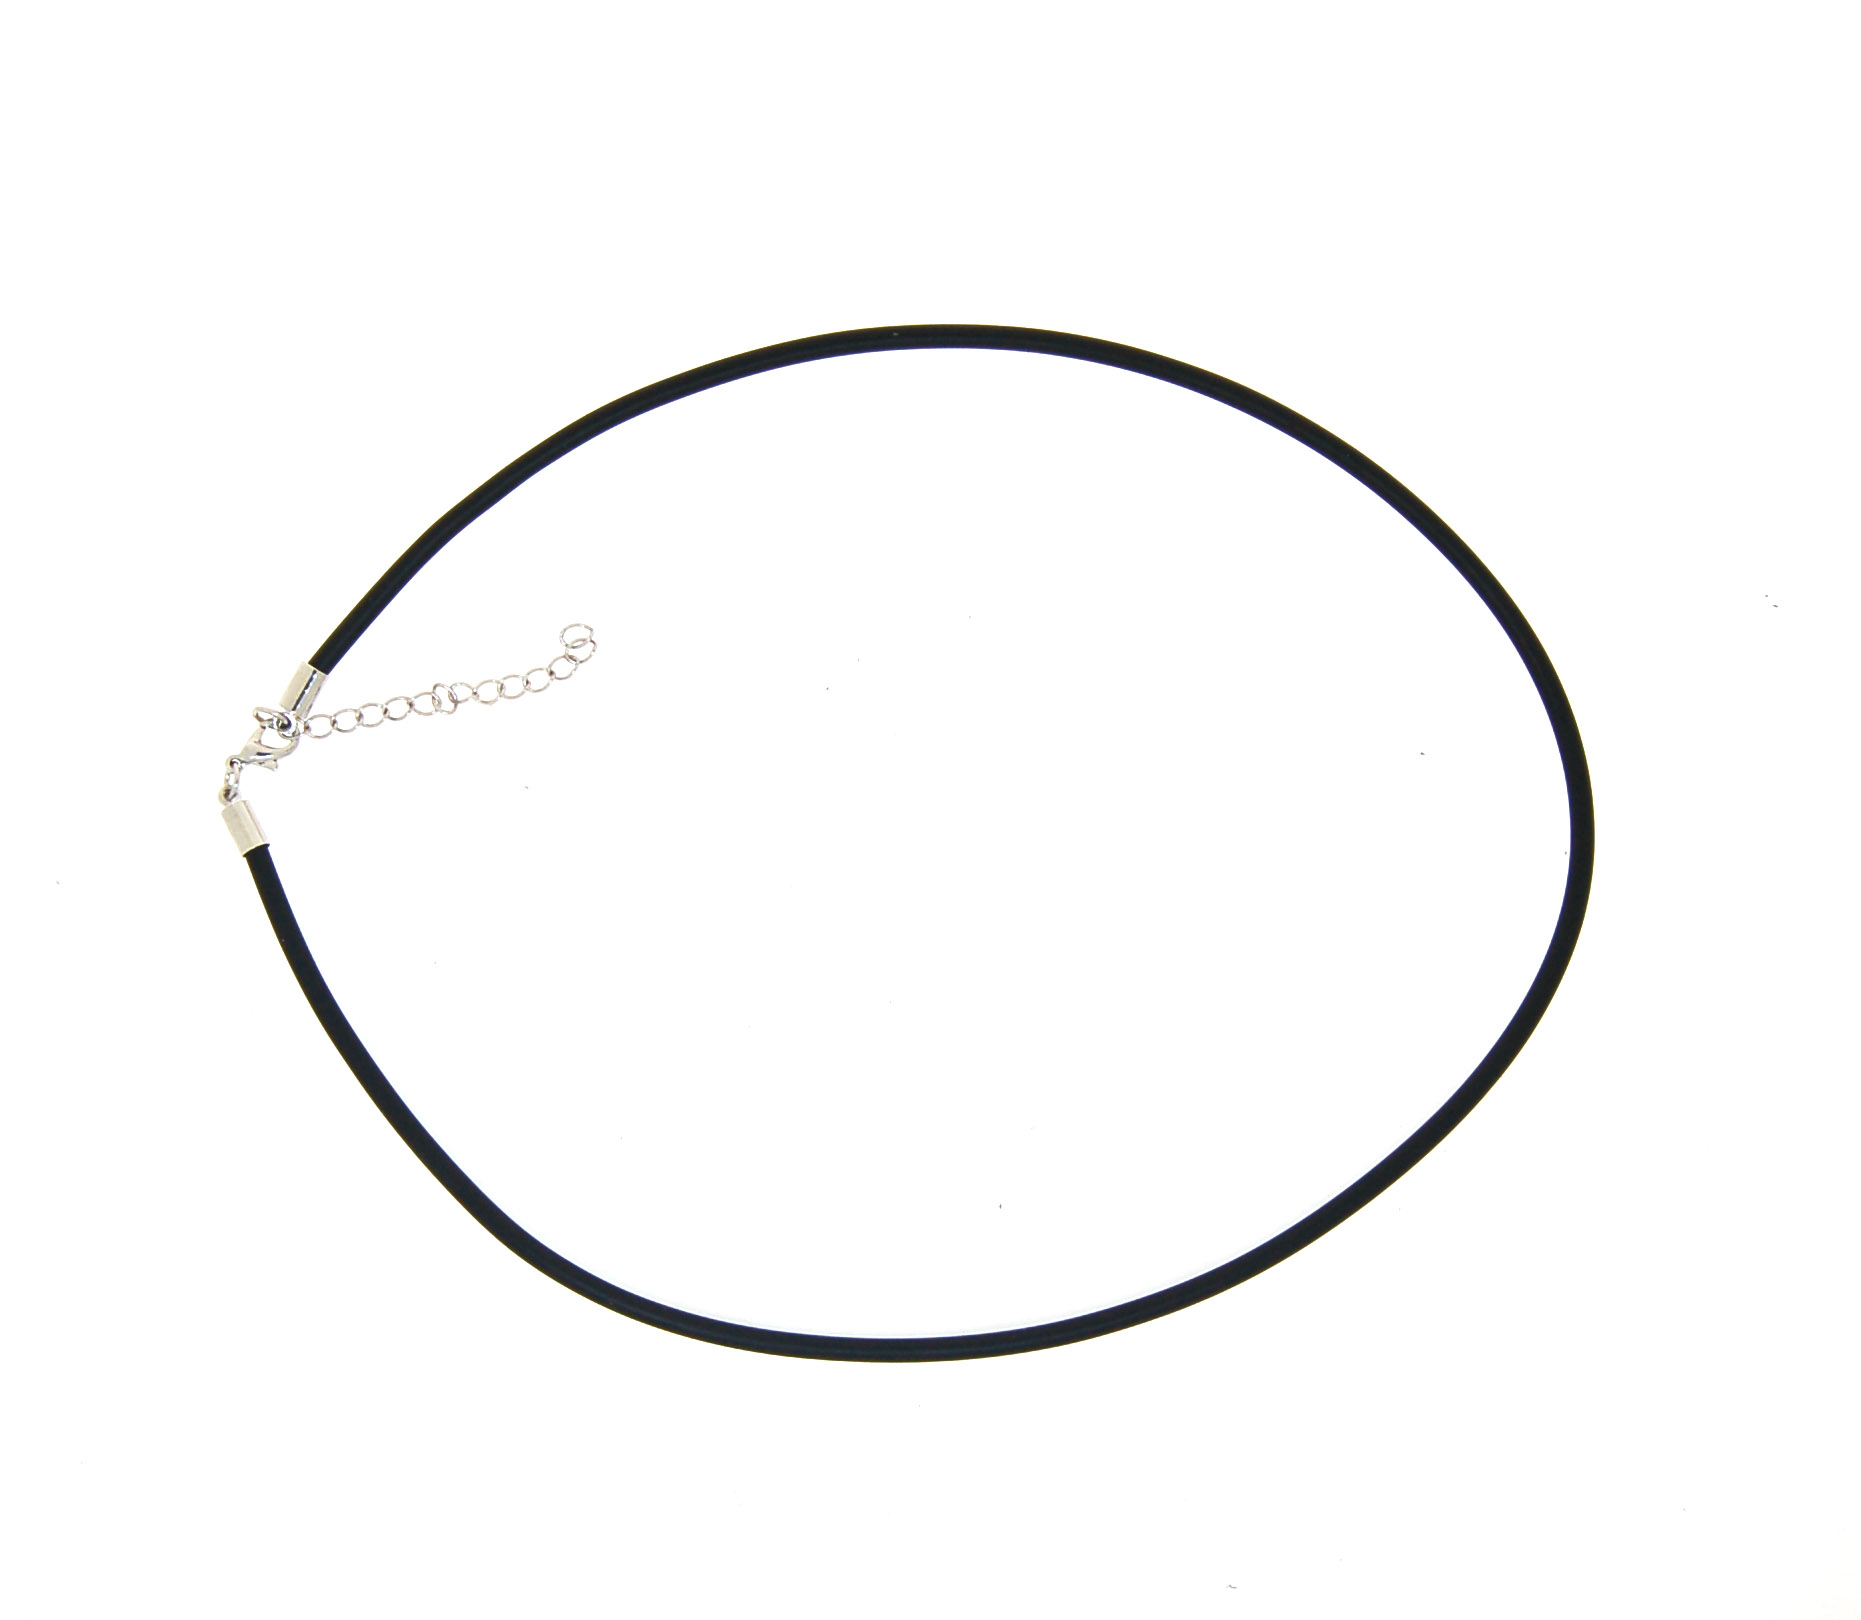 Neoprene Choker 3.0mm with Parrot Clasp